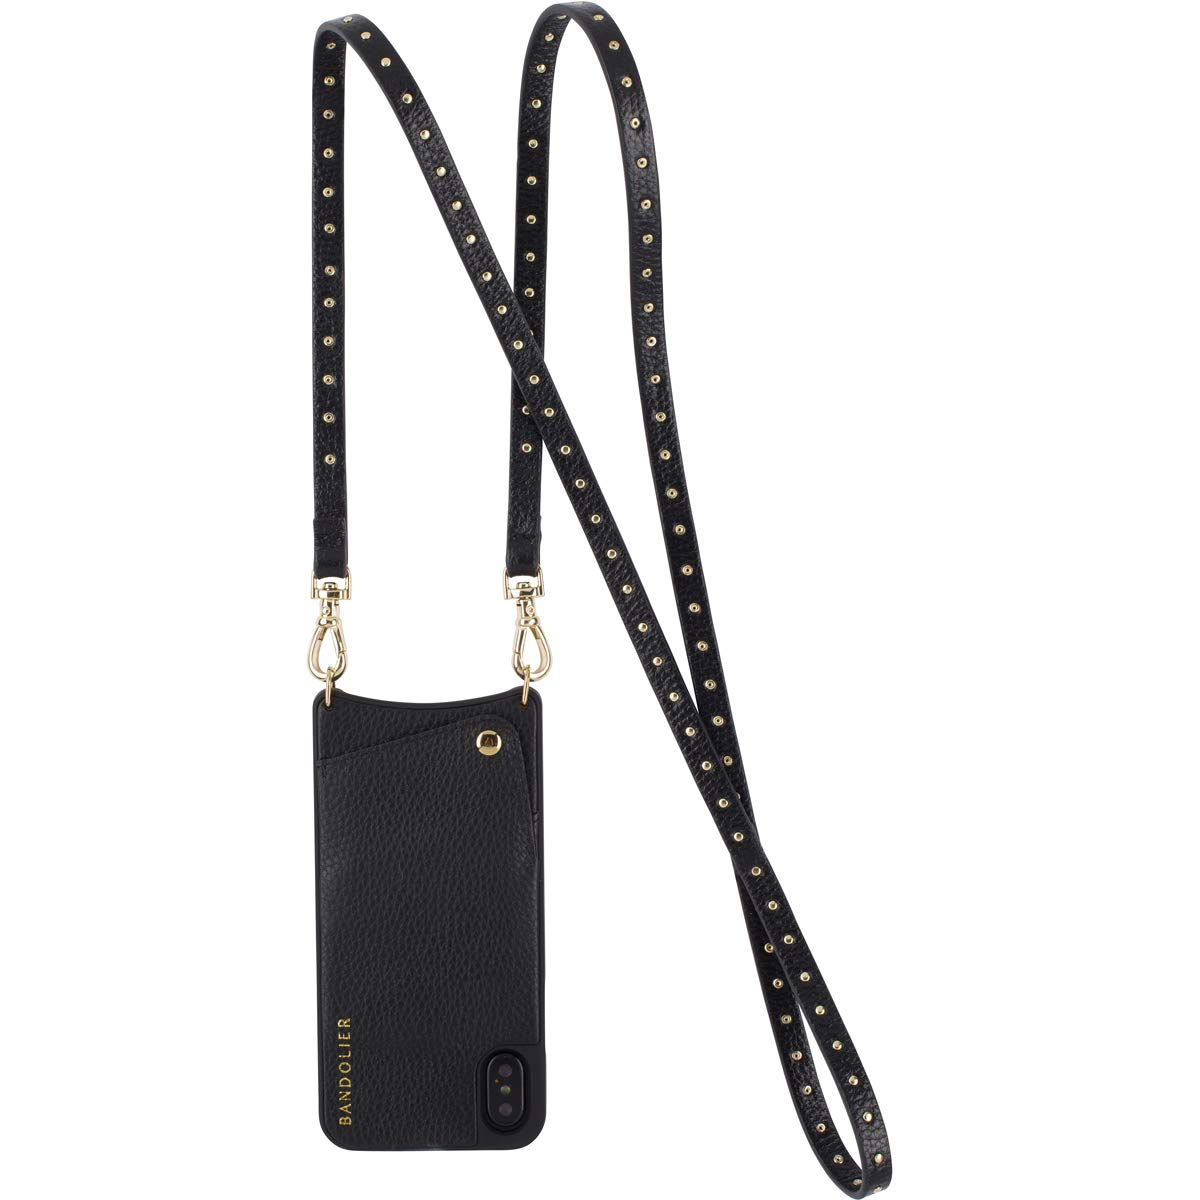 Bandolier [Nicole] Crossbody Phone Case and Wallet - Compatible with iPhone 8/7 / 6 - Black Leather with Gold Accent by Bandolier (Image #4)